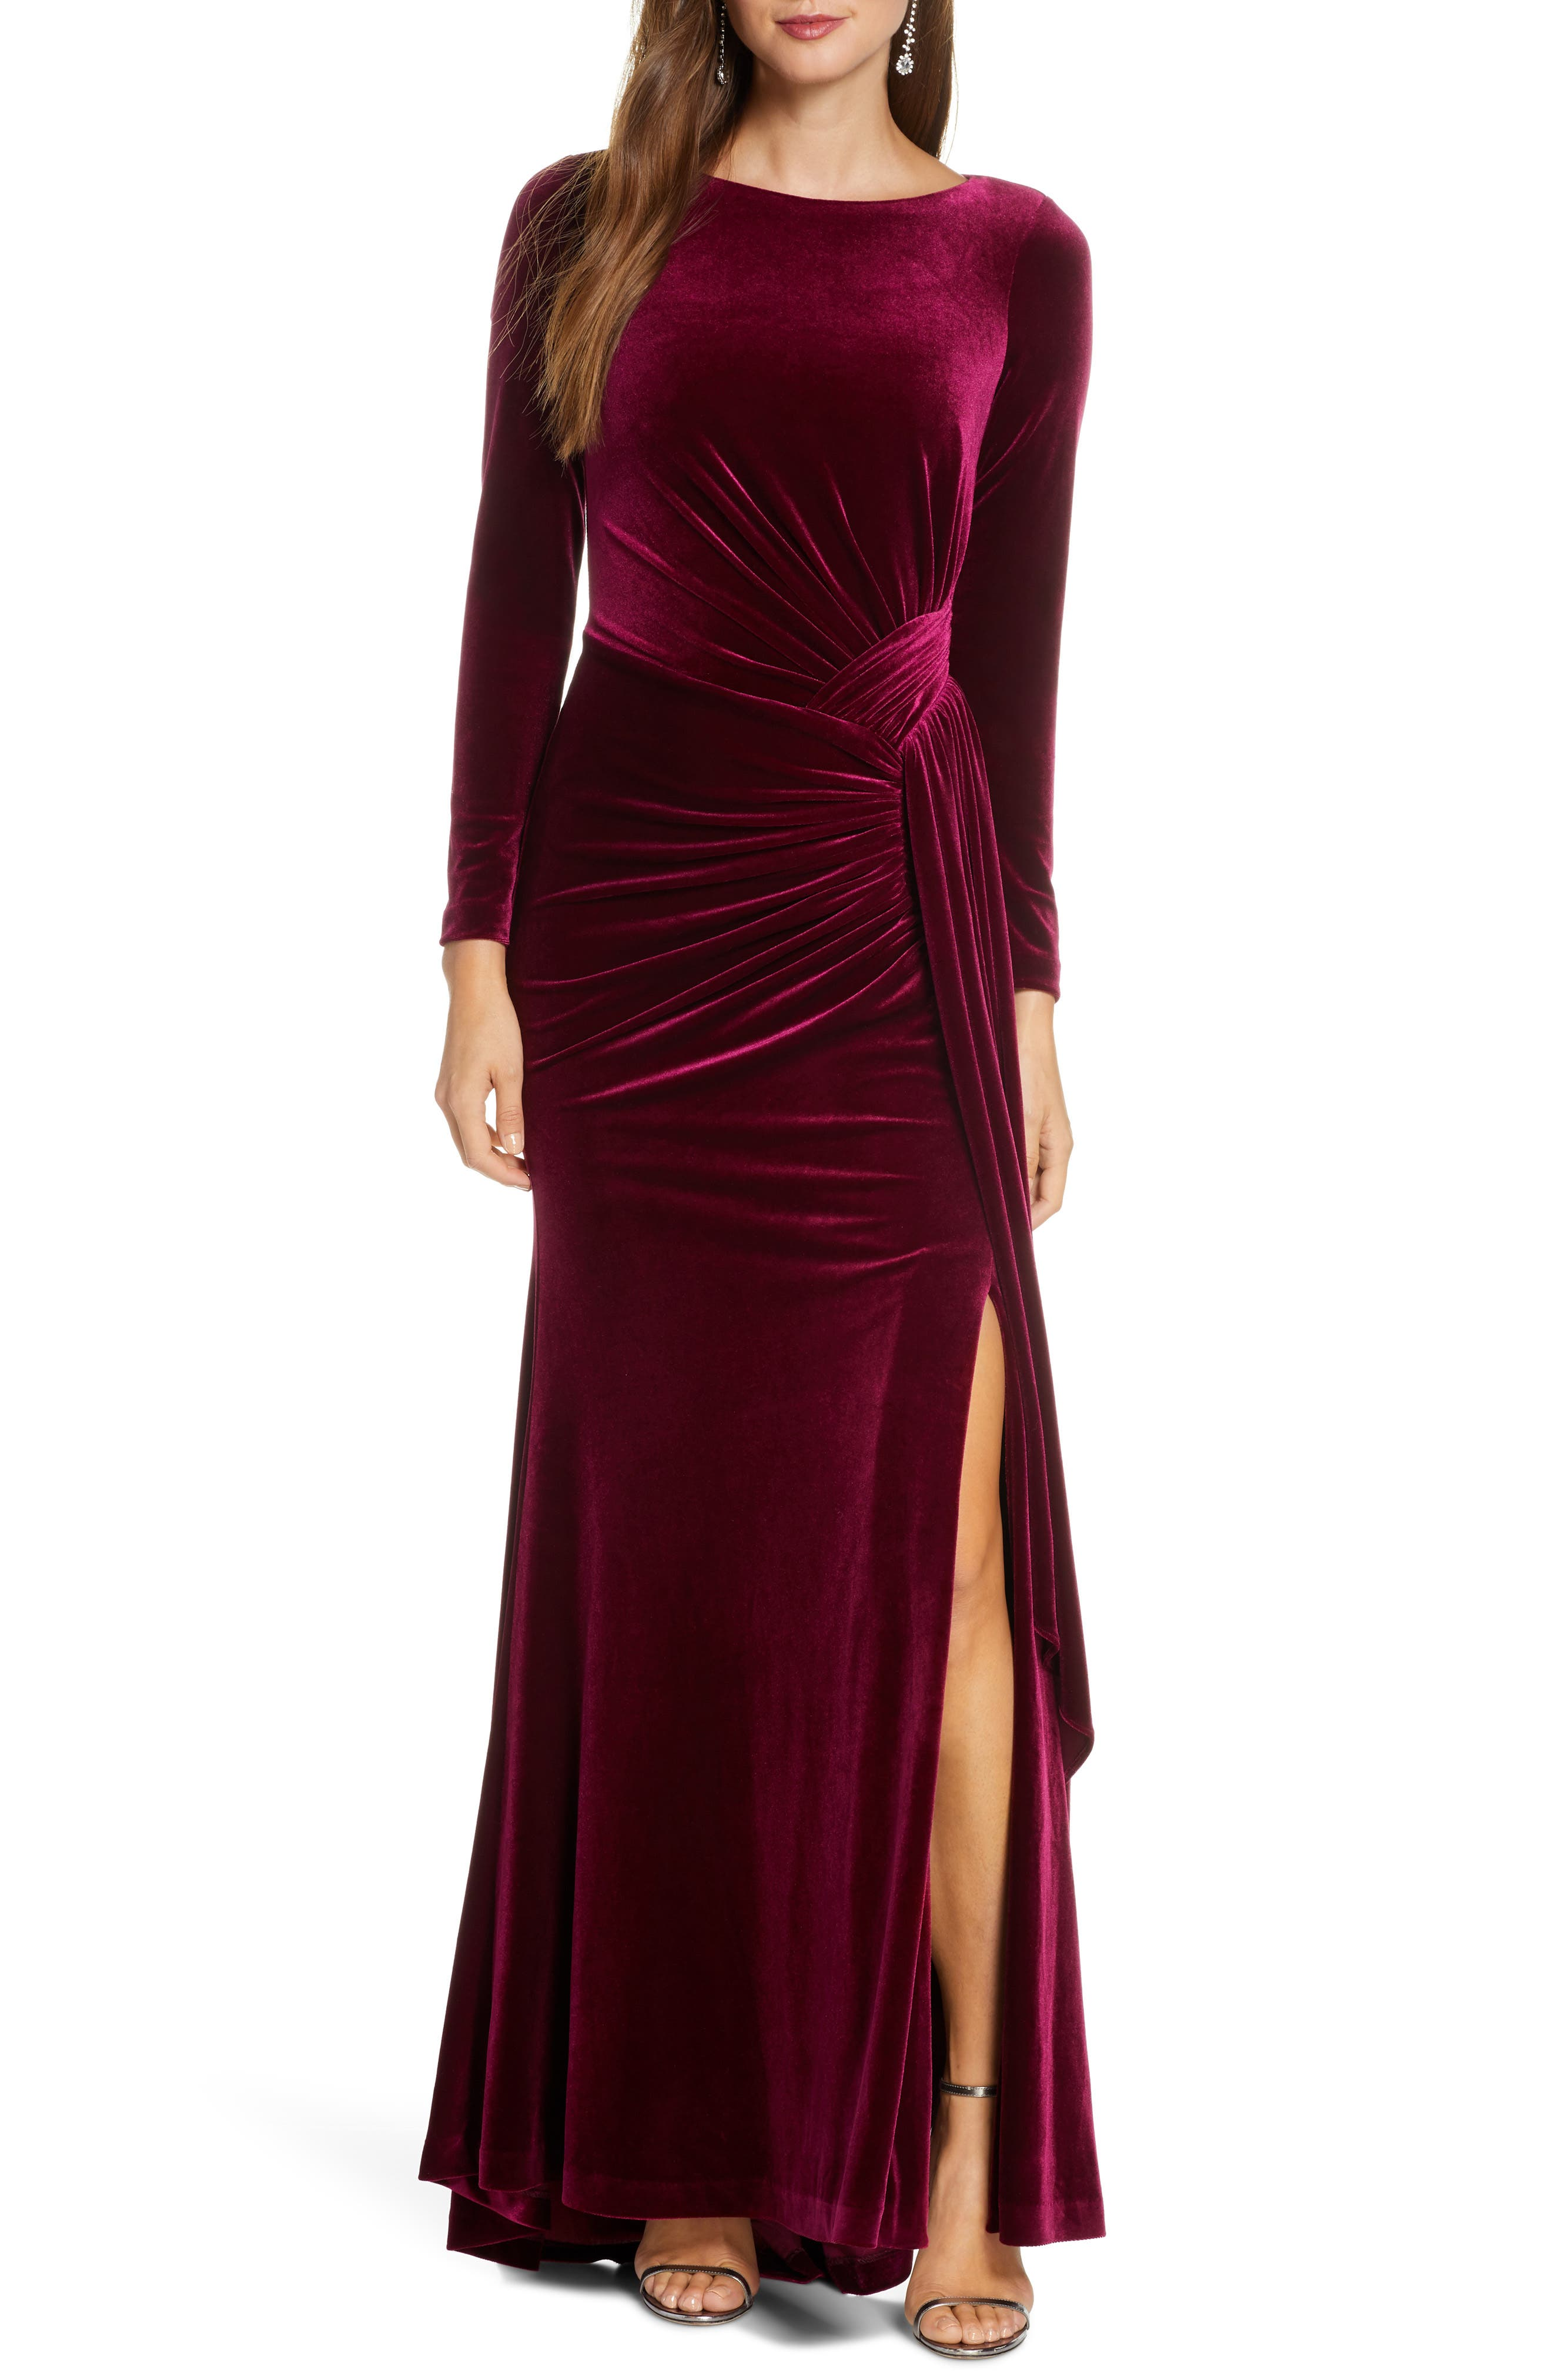 1940s Bridesmaid Dresses, Mother of the Bride Womens Vince Camuto Long Sleeve Velvet Gown Size 16 - Burgundy $228.00 AT vintagedancer.com